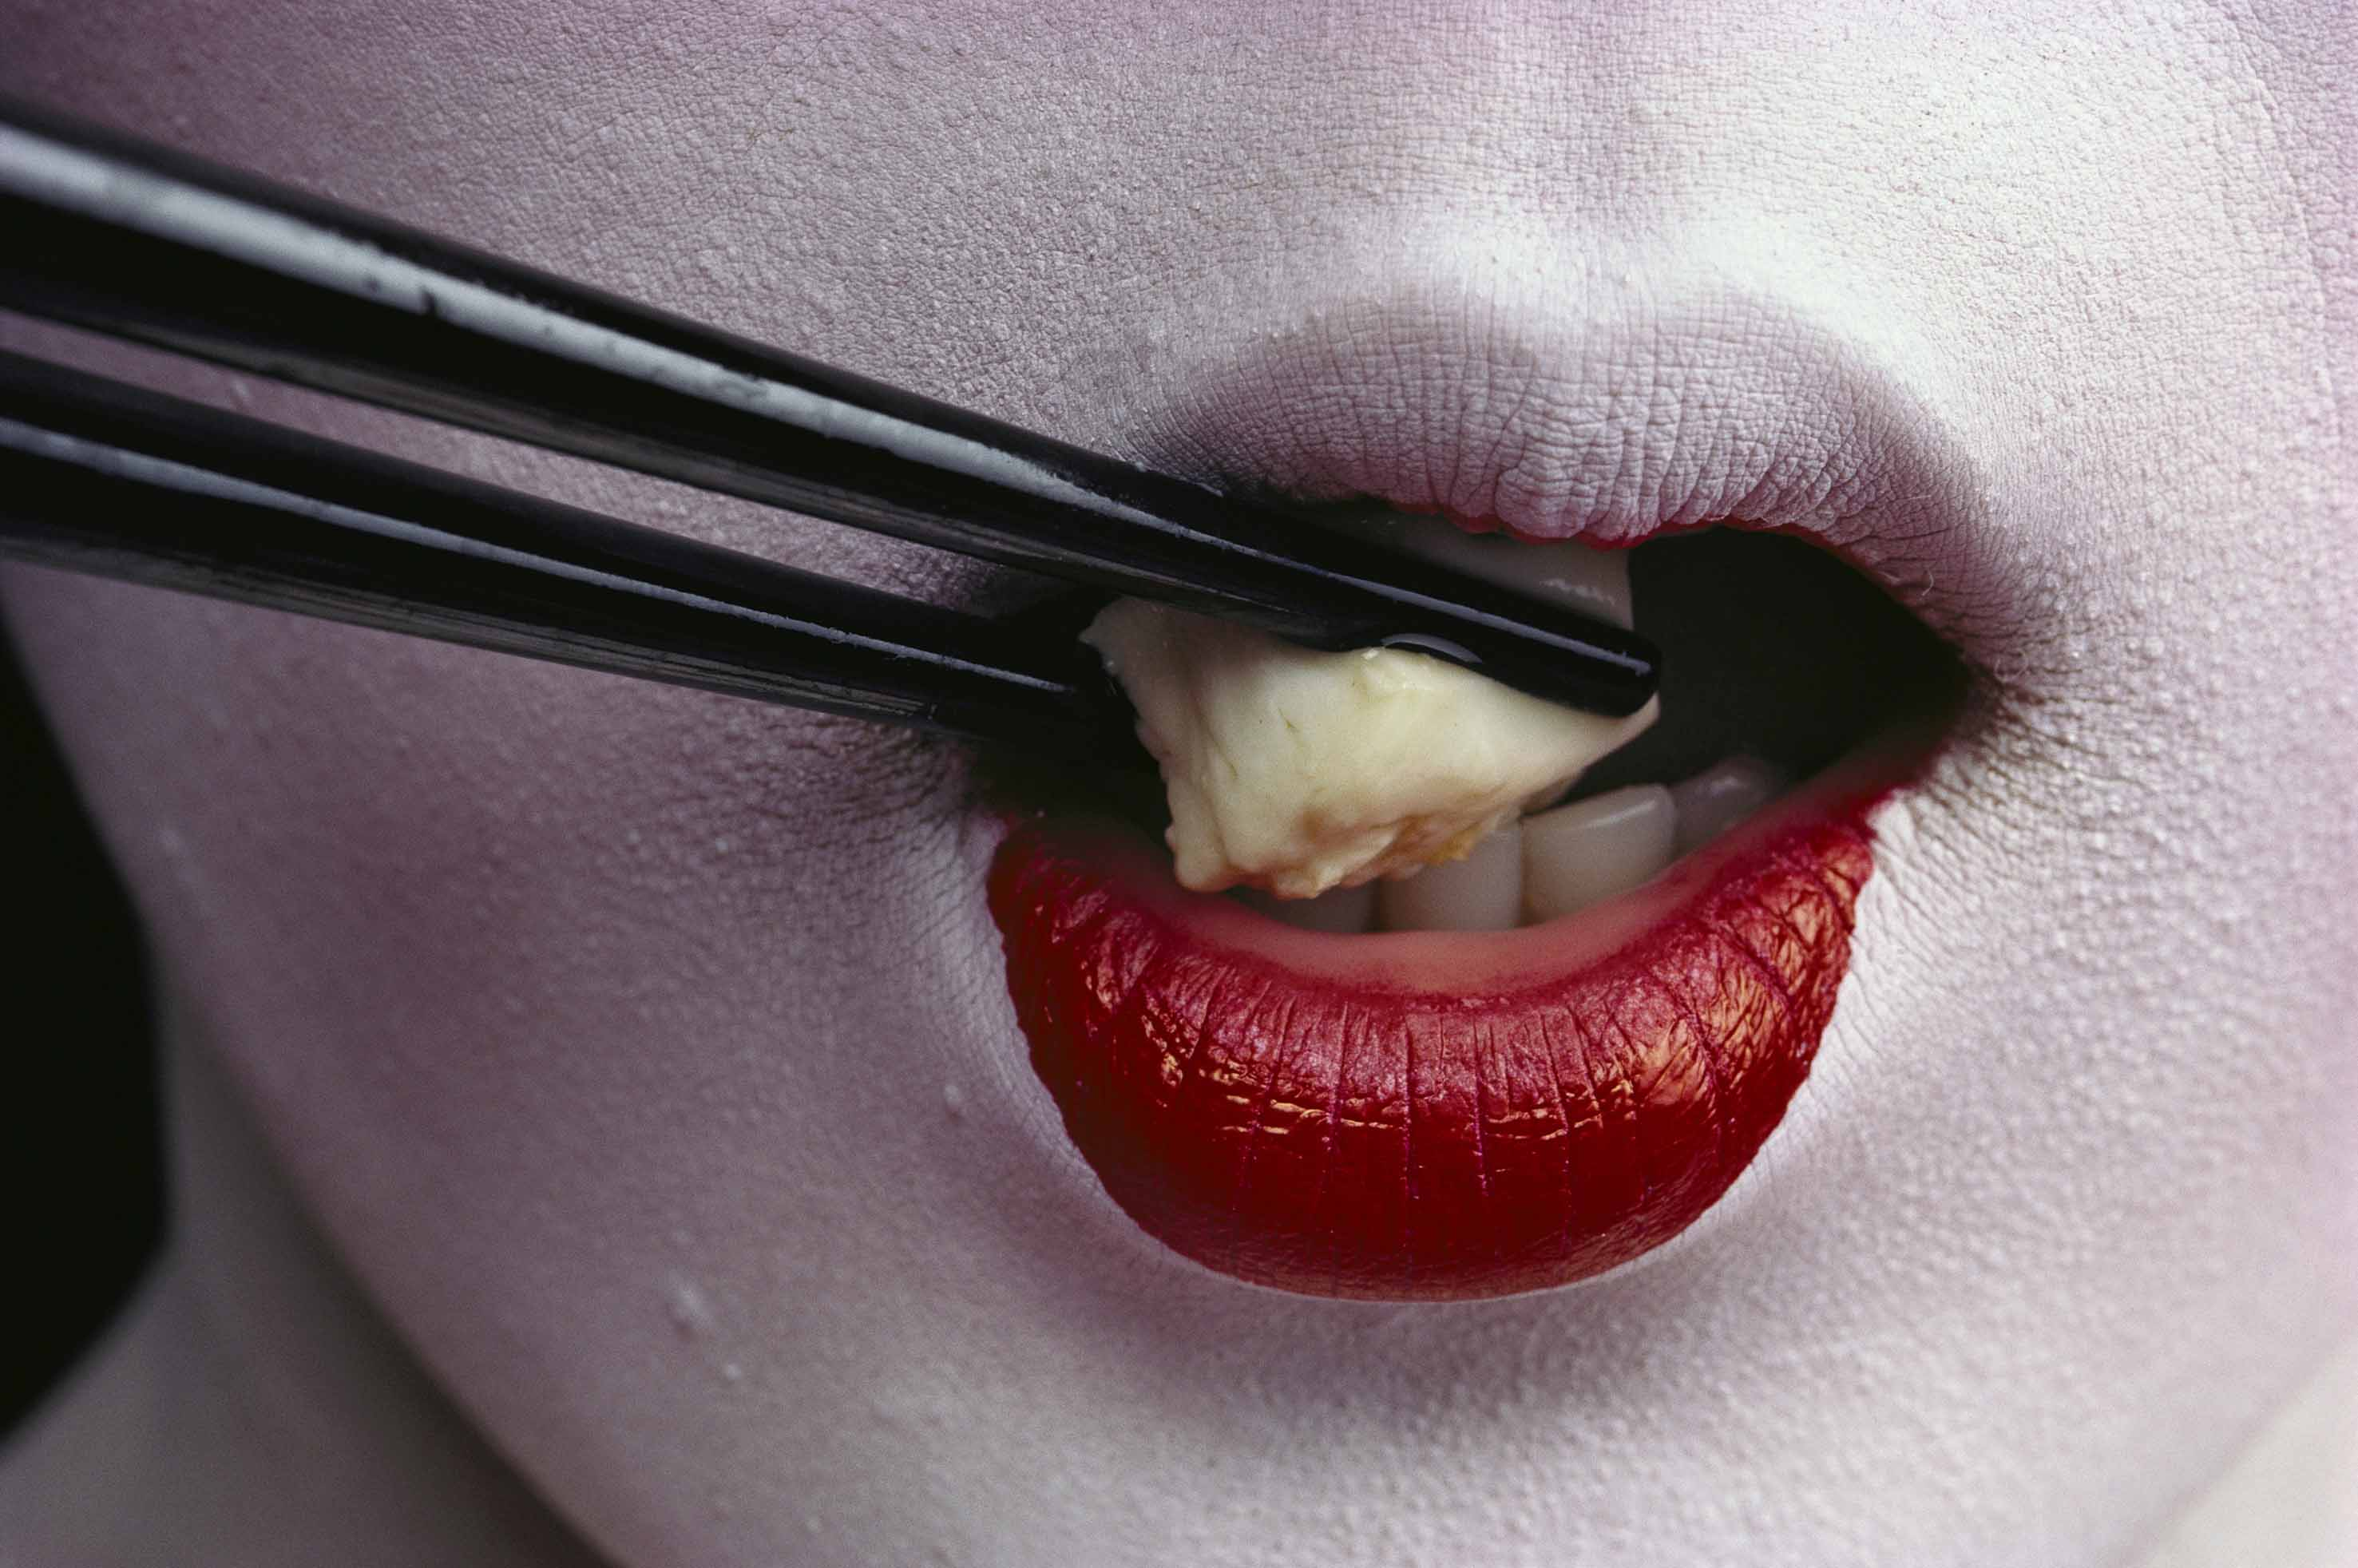 Close view of a geisha eating tofu with chopsticks.